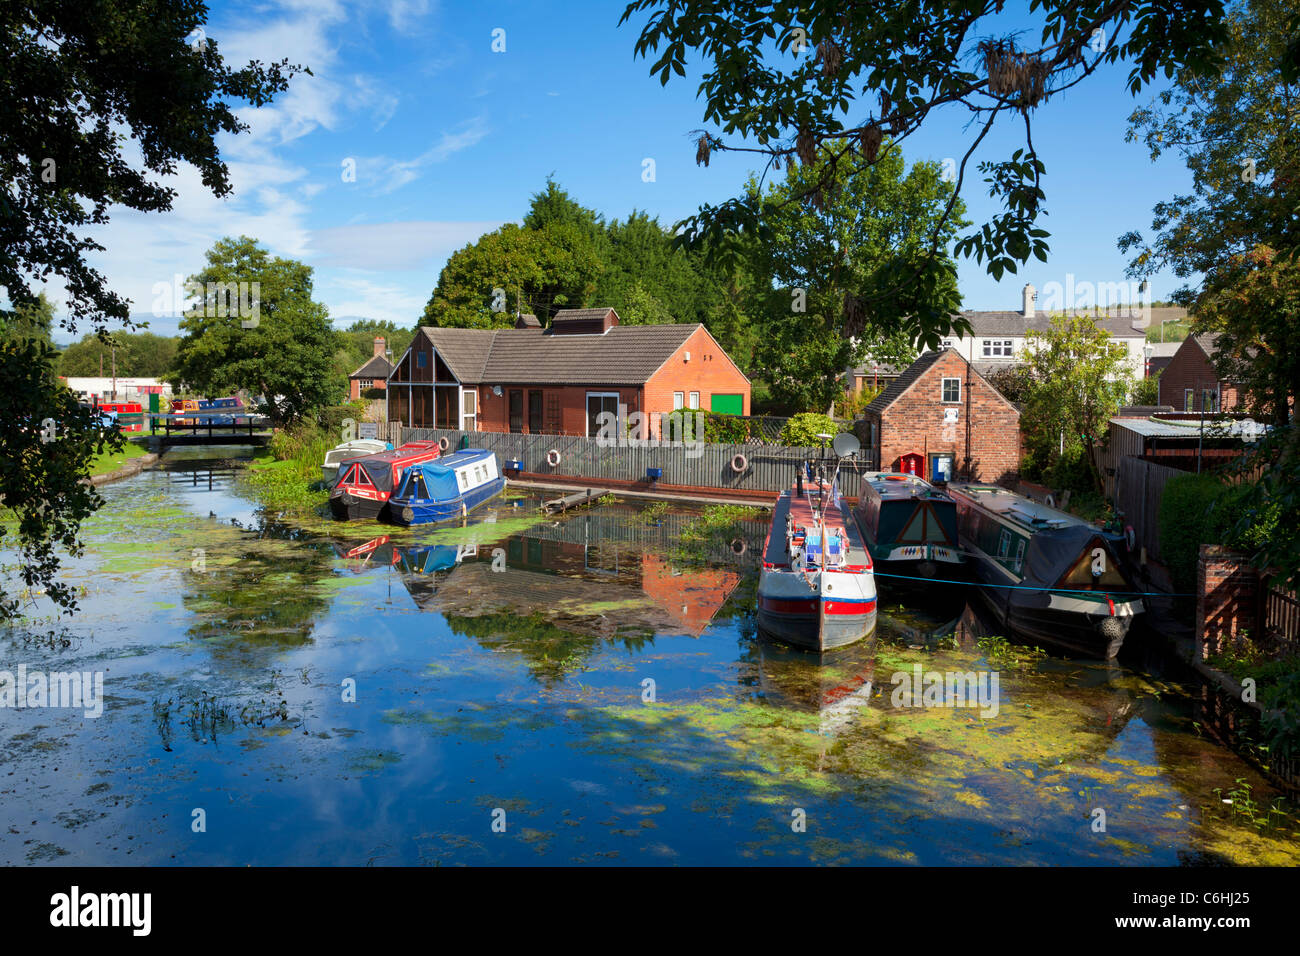 Langley Mill basin on the Erewash canal at the Great Northern Basin Langley Mill Nottinghamshire England UK GB EU - Stock Image